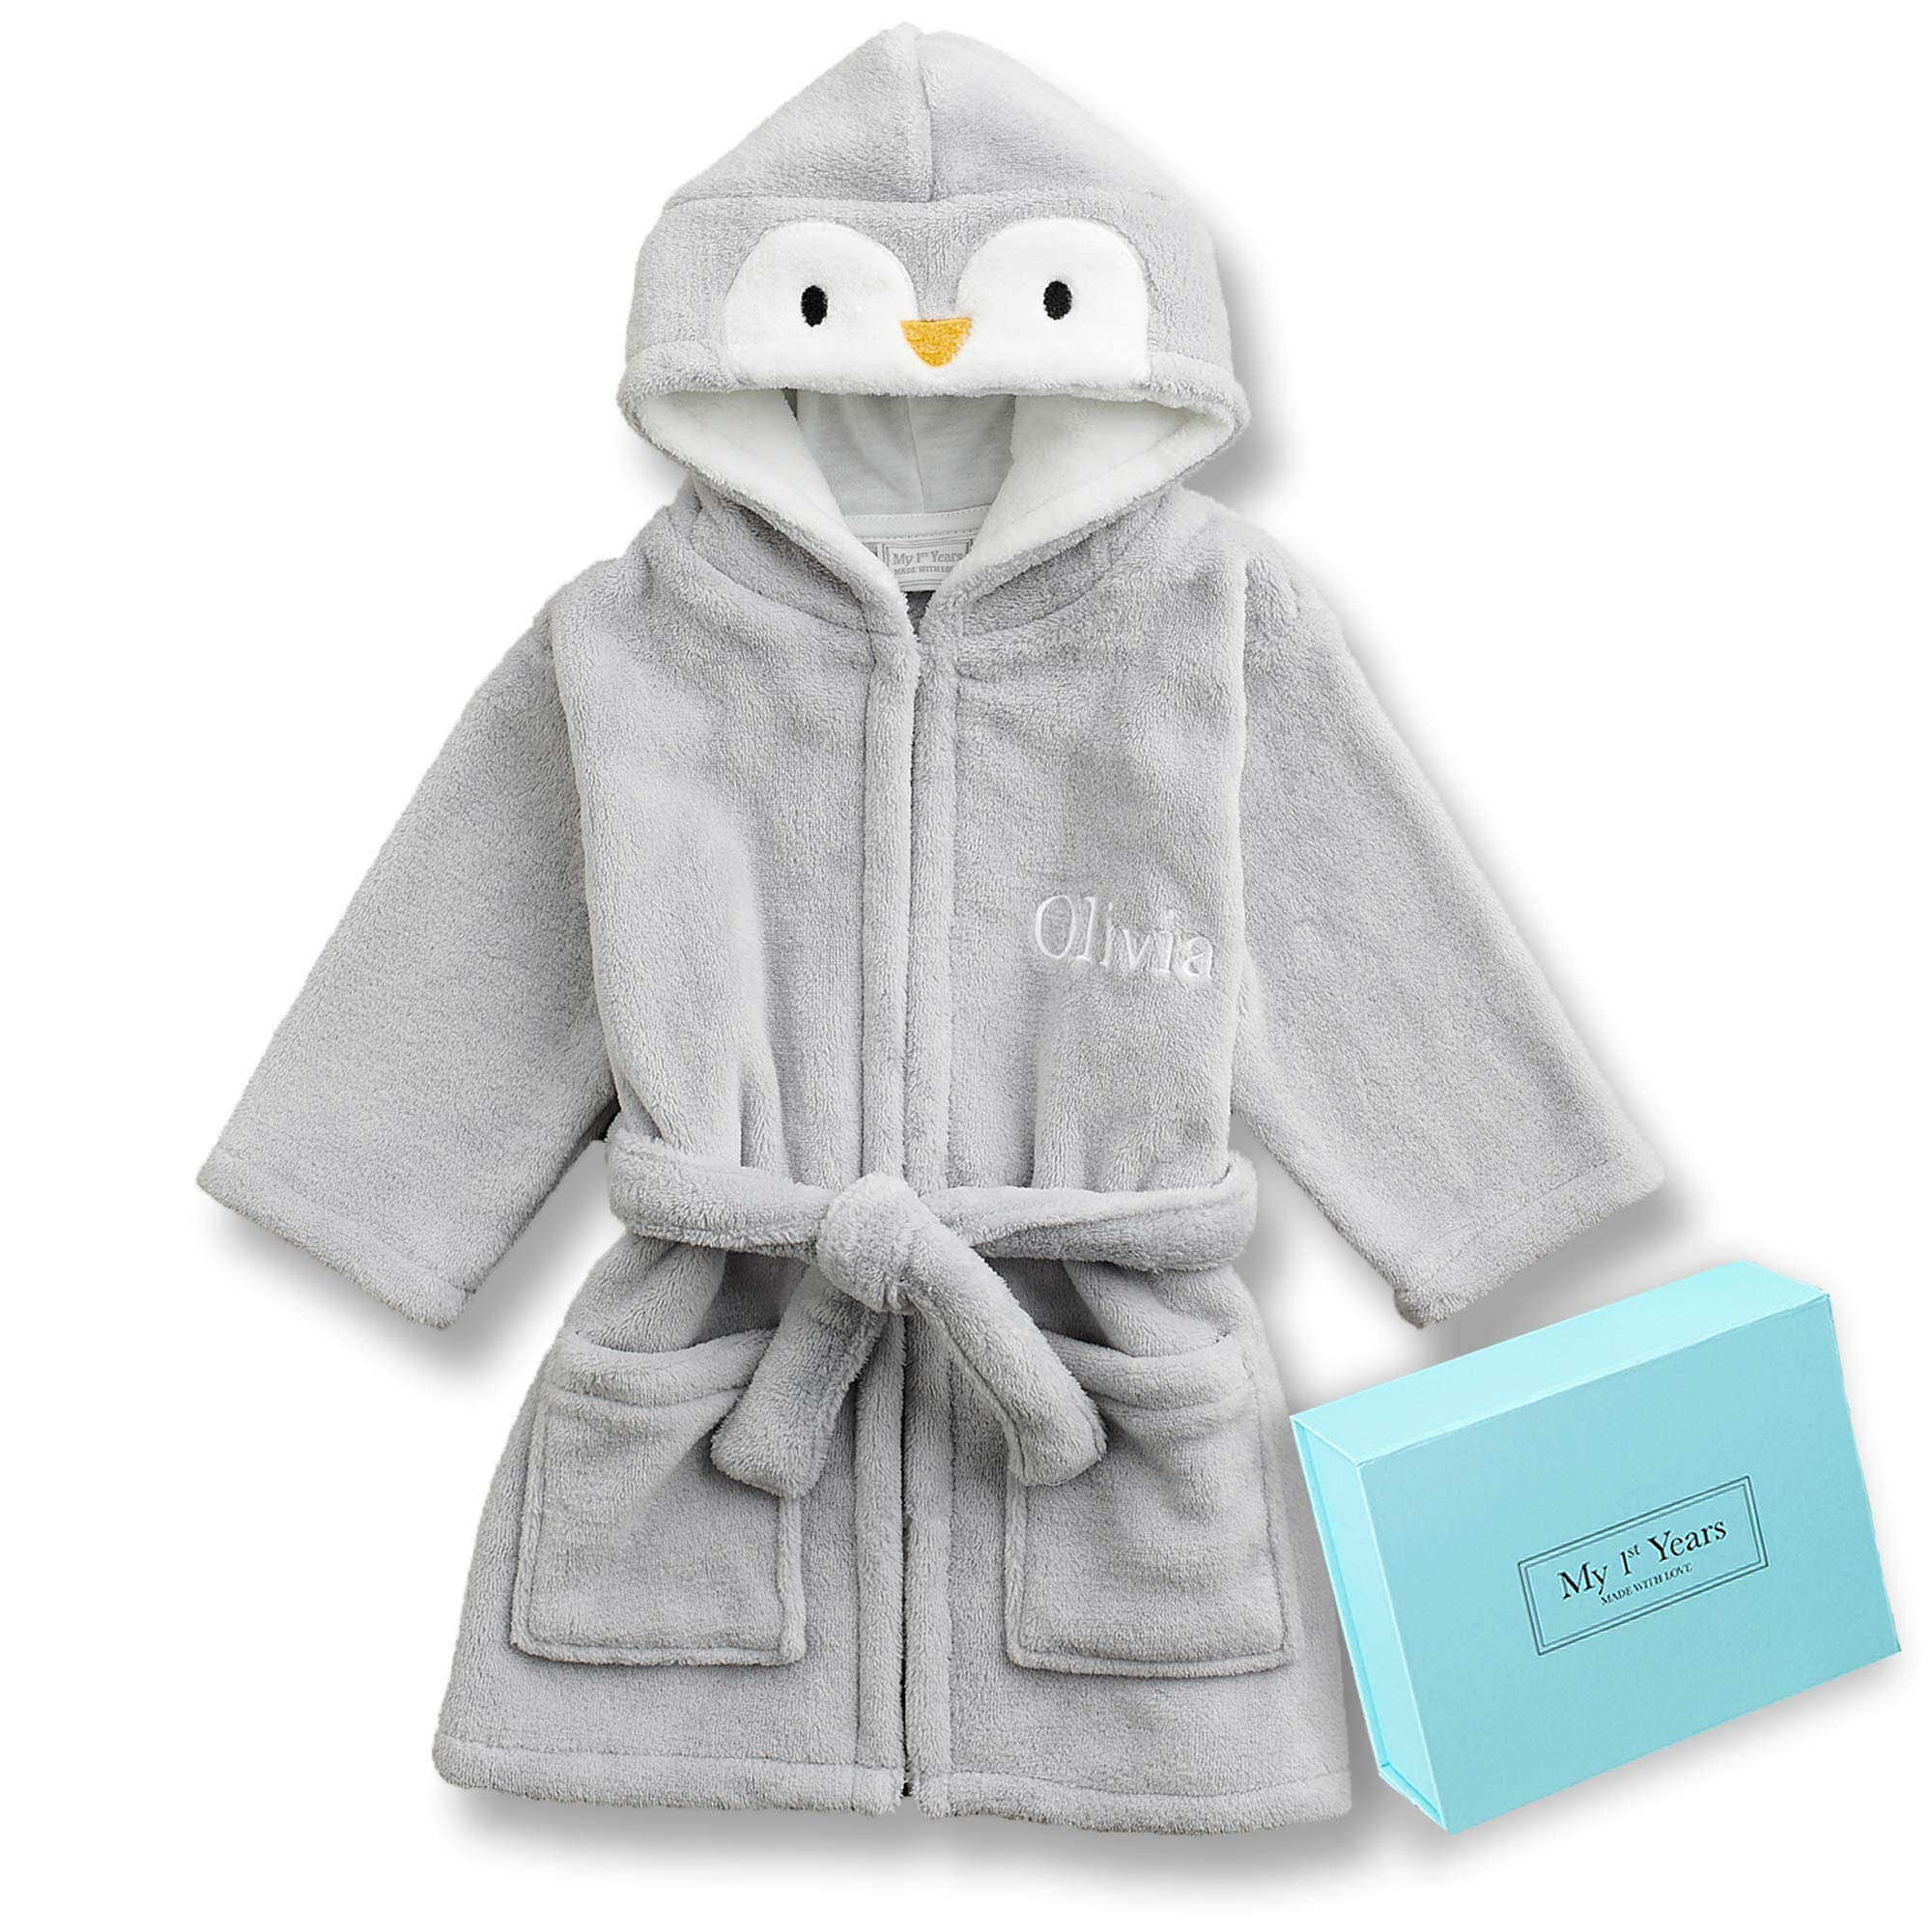 Personalized Bath Robe for Baby & Toddler - Adorable Penguin Soft Hooded Animal Bathrobe for Kids - The Perfect Custom Baby Gift for Boys & Girls - Gift Box Included by MY 1ST YEARS MADE WITH LOVE